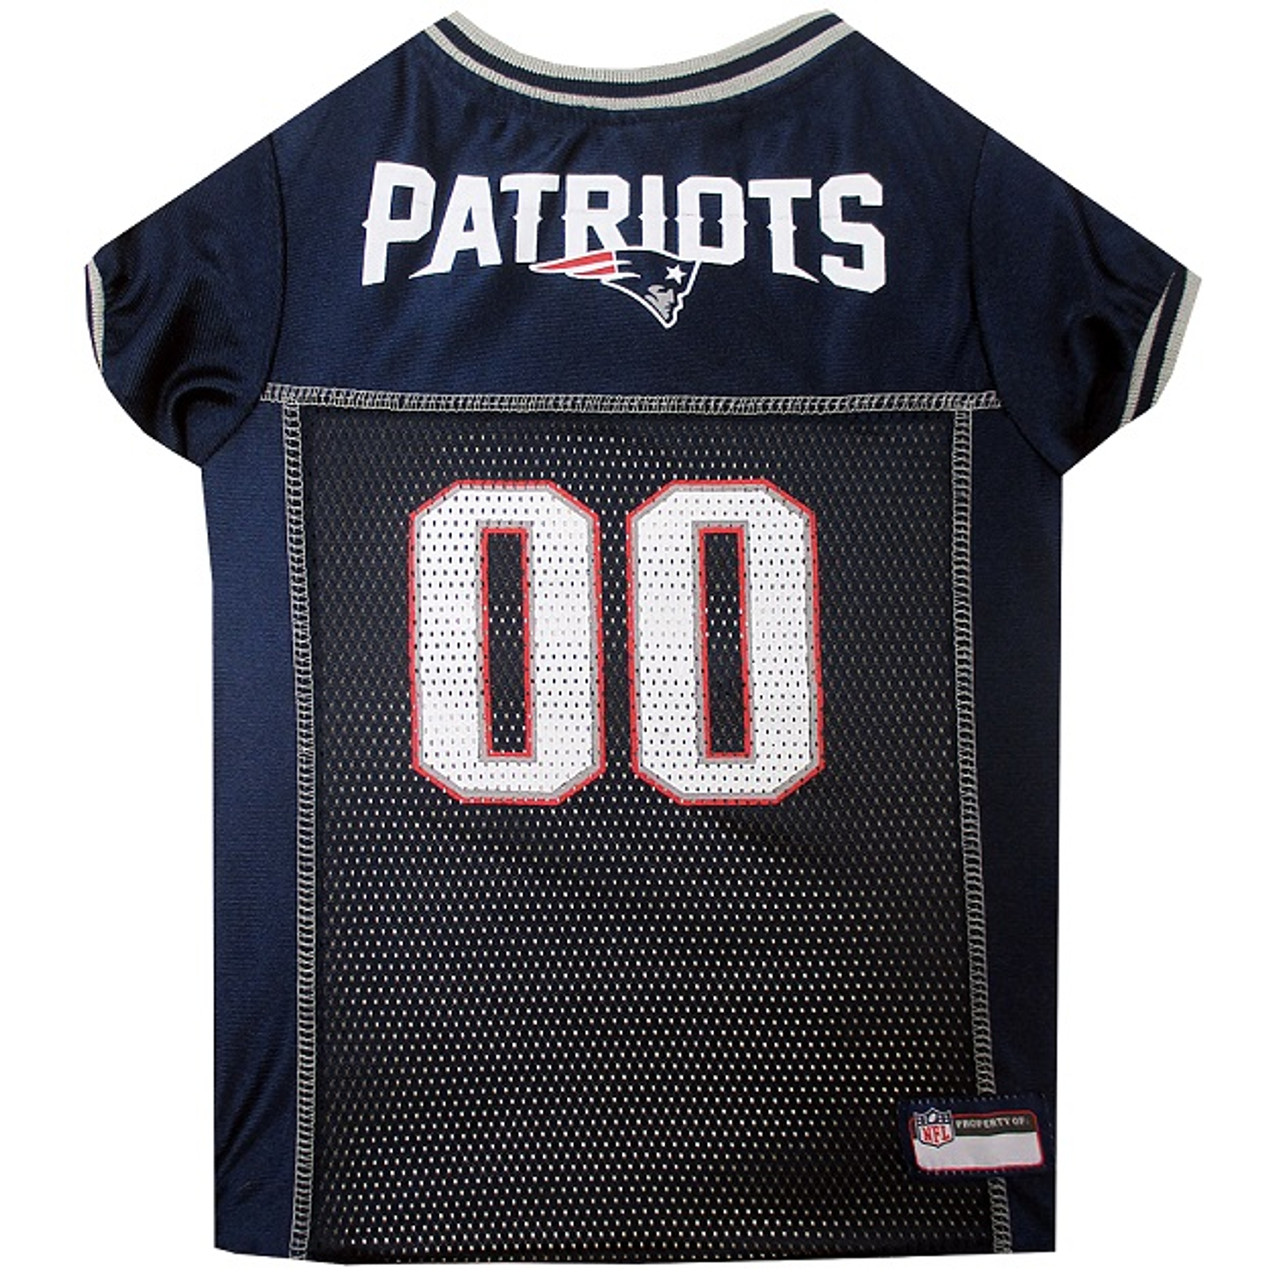 7eea55b86 New England Patriots Officially Licensed NFL Pet Jersey - CHIHUAHUA LAND  AND MORE